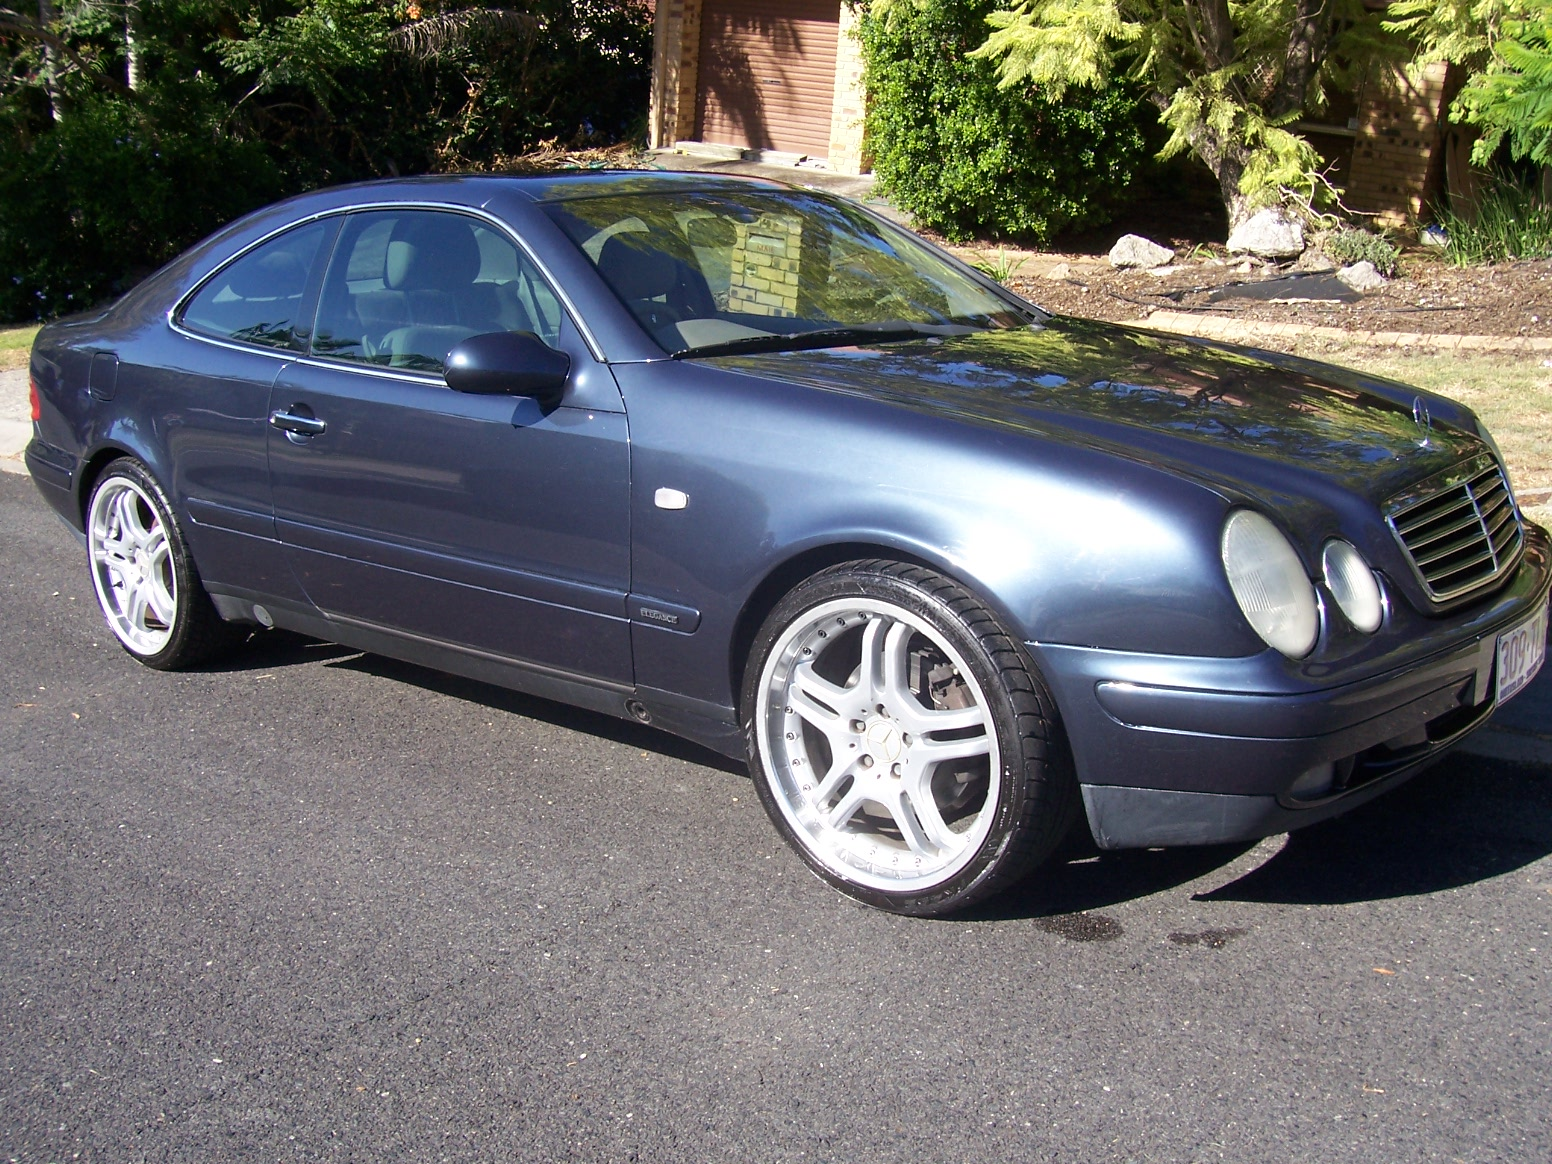 Matthew gray 1999 benz clk320 car sales qld brisbane for 1999 mercedes benz clk320 for sale